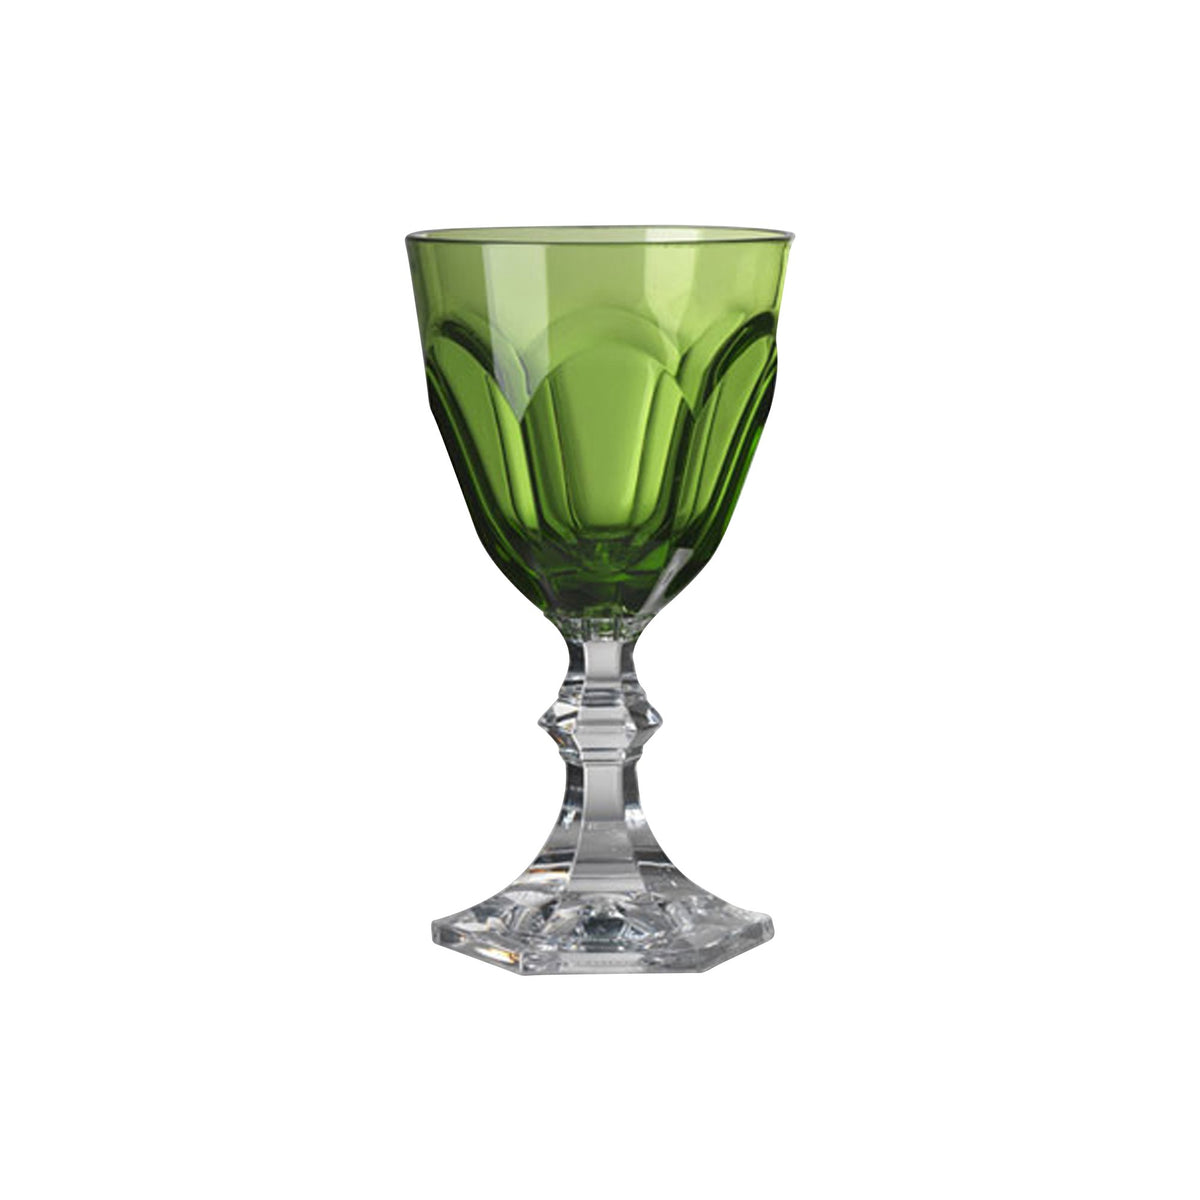 Acrylic Dolce Vita Green Water Goblet